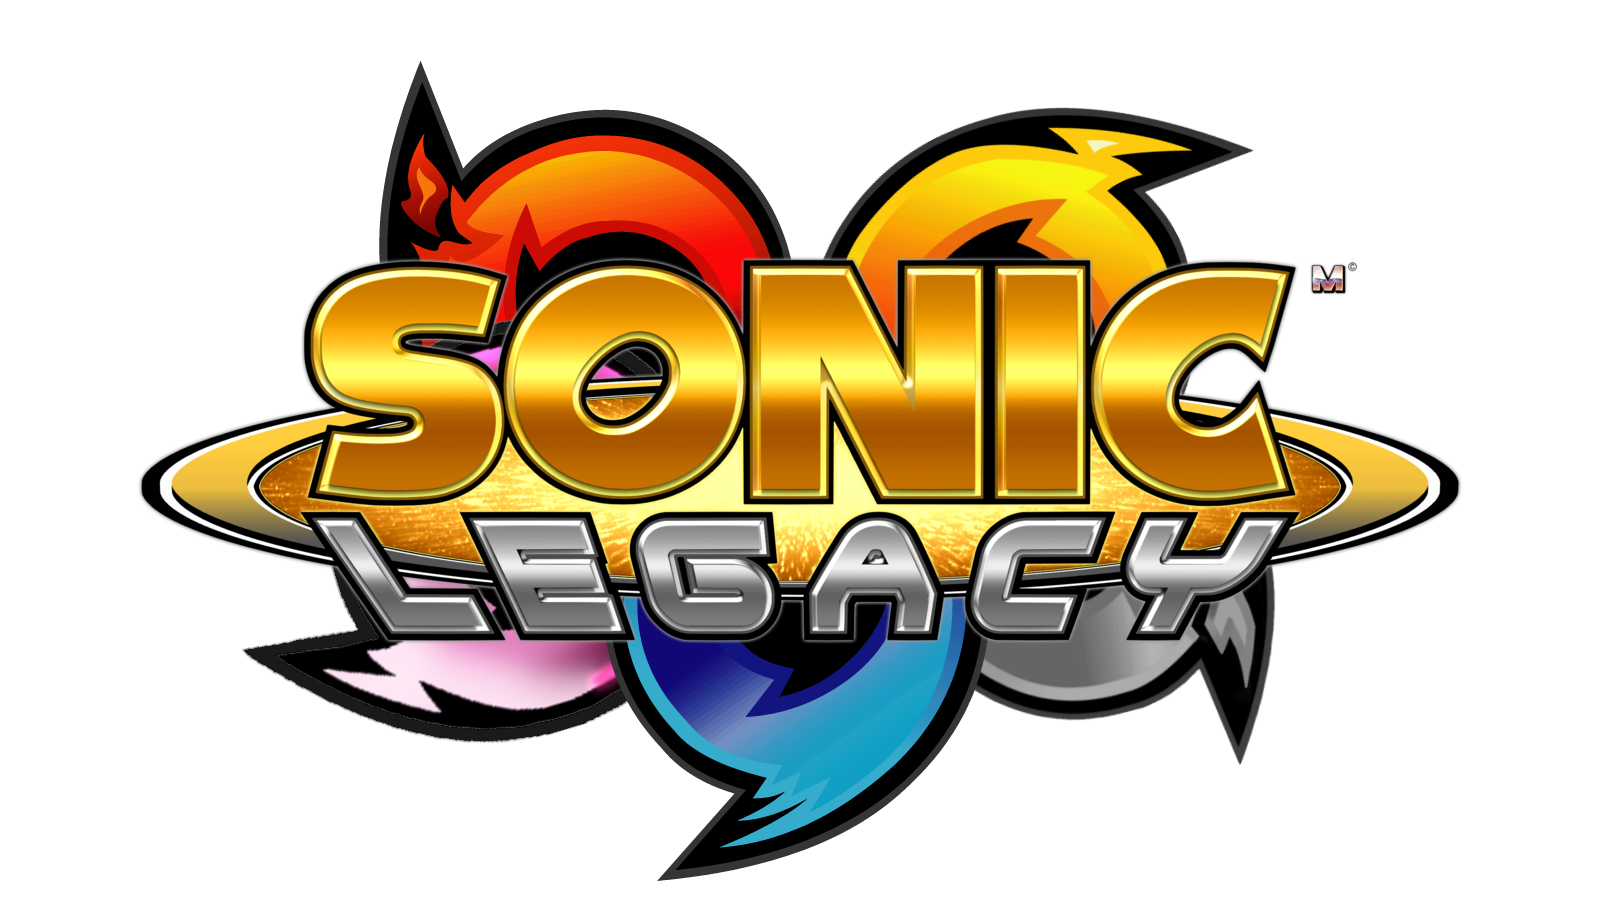 Memories clipart recollection. Sonic legacy nintendo switch